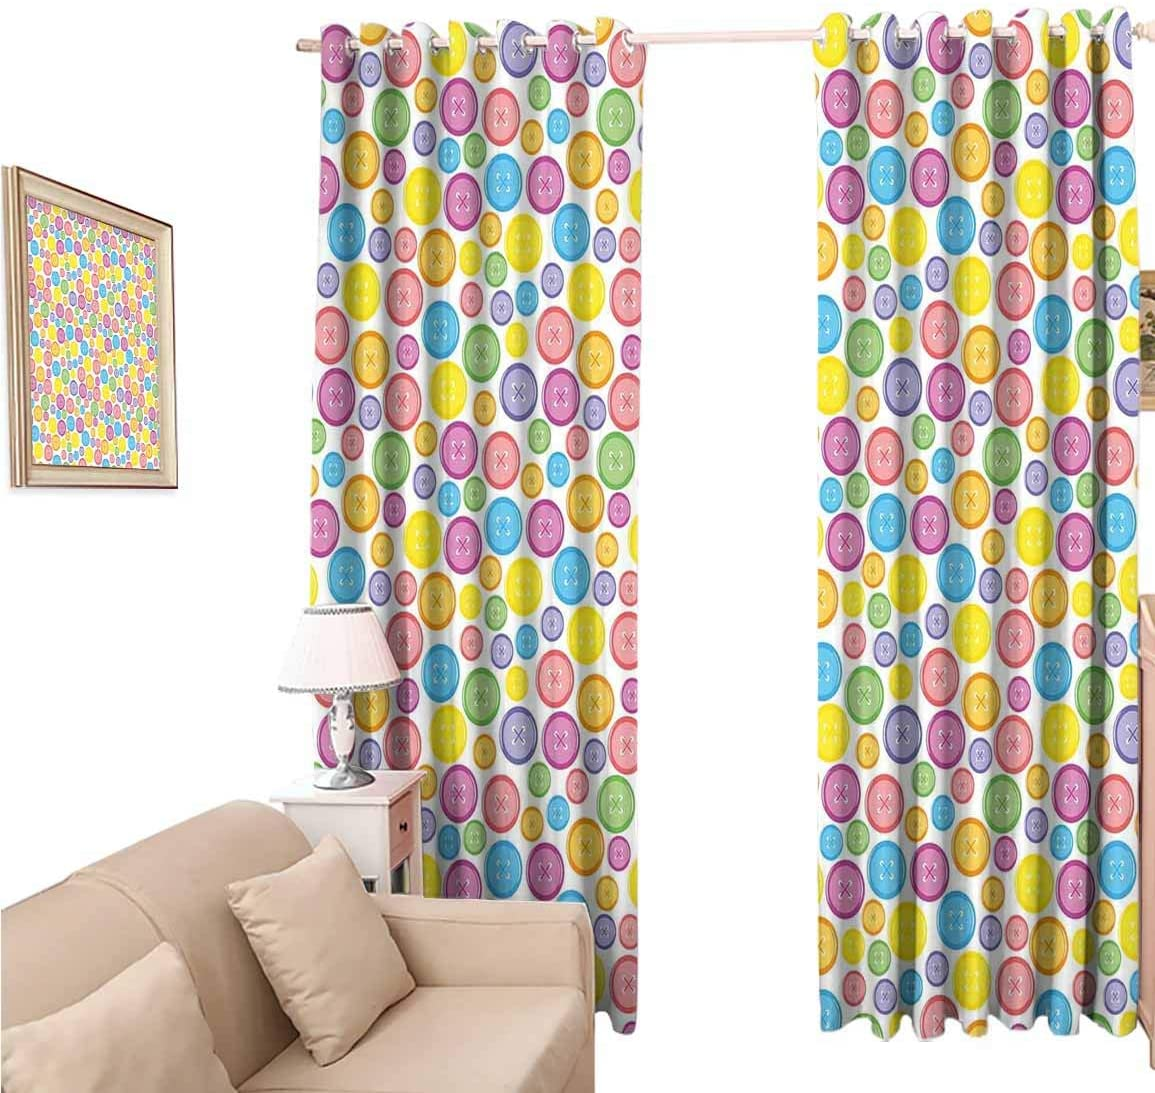 oobon Window Blackout Curtains Fabric, Modern Circular Shaped Buttons in Various Sizes Artistic Kids Nursery Baby, 108 Inches Long for Nursery Room, 96x108 inch